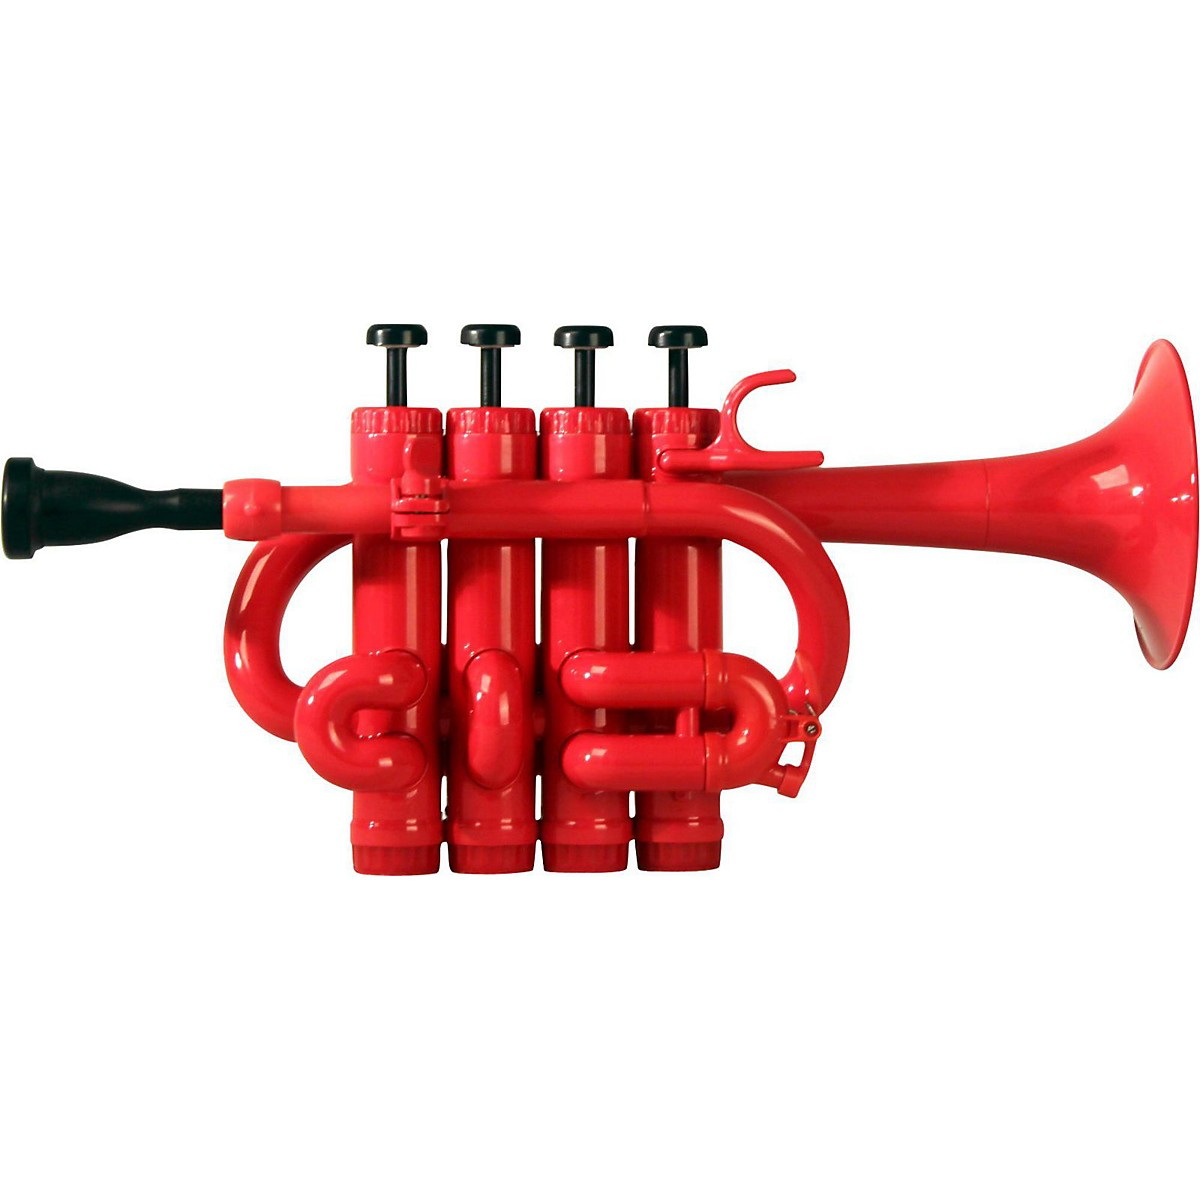 Cool Wind CPT-200 Series Plastic Bb/A Piccolo Trumpet